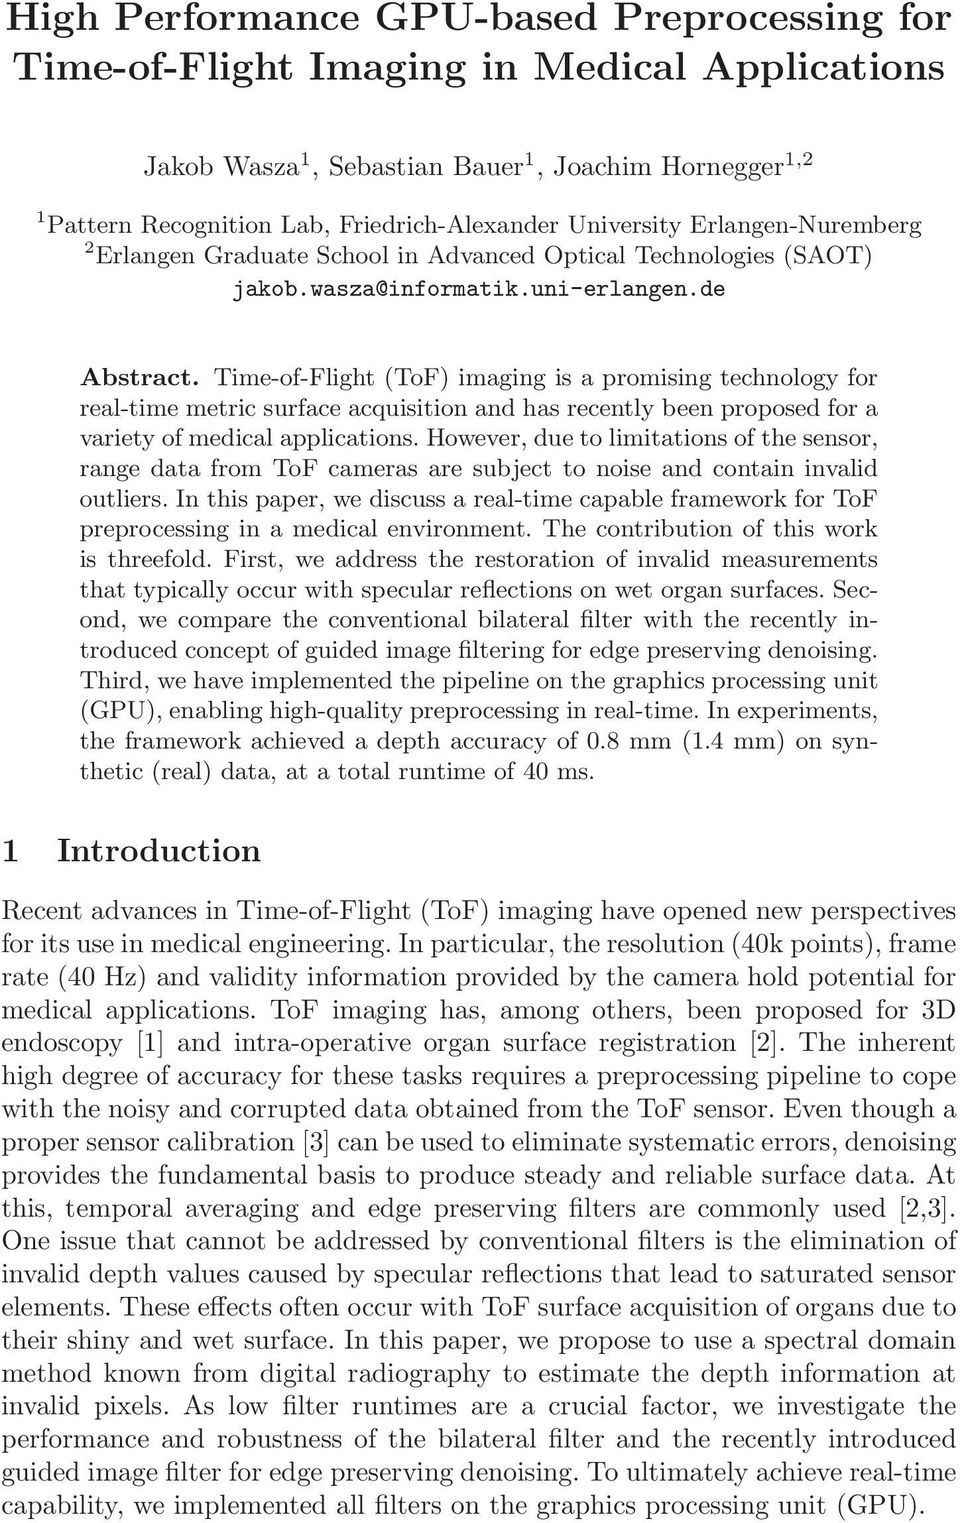 Time-of-Flight ToF) imaging is a promising technology for real-time metric surface acquisition and has recently been proposed for a variety of medical applications.